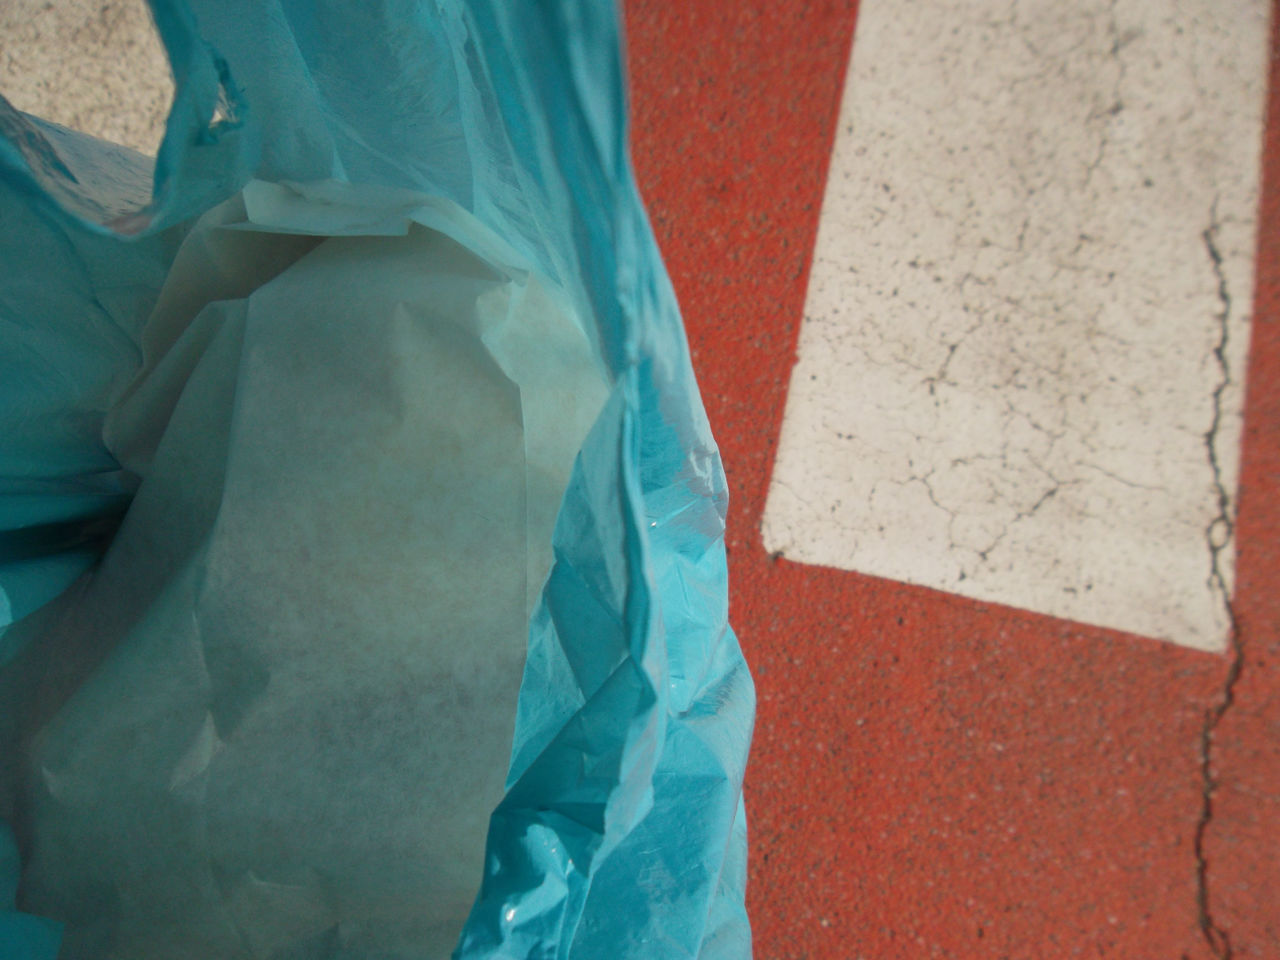 Walking with a bread bag ... Close-up Day Fabric No People Outdoors Pedestrian Crossing Pedestrian Walkway Street Photography Textile